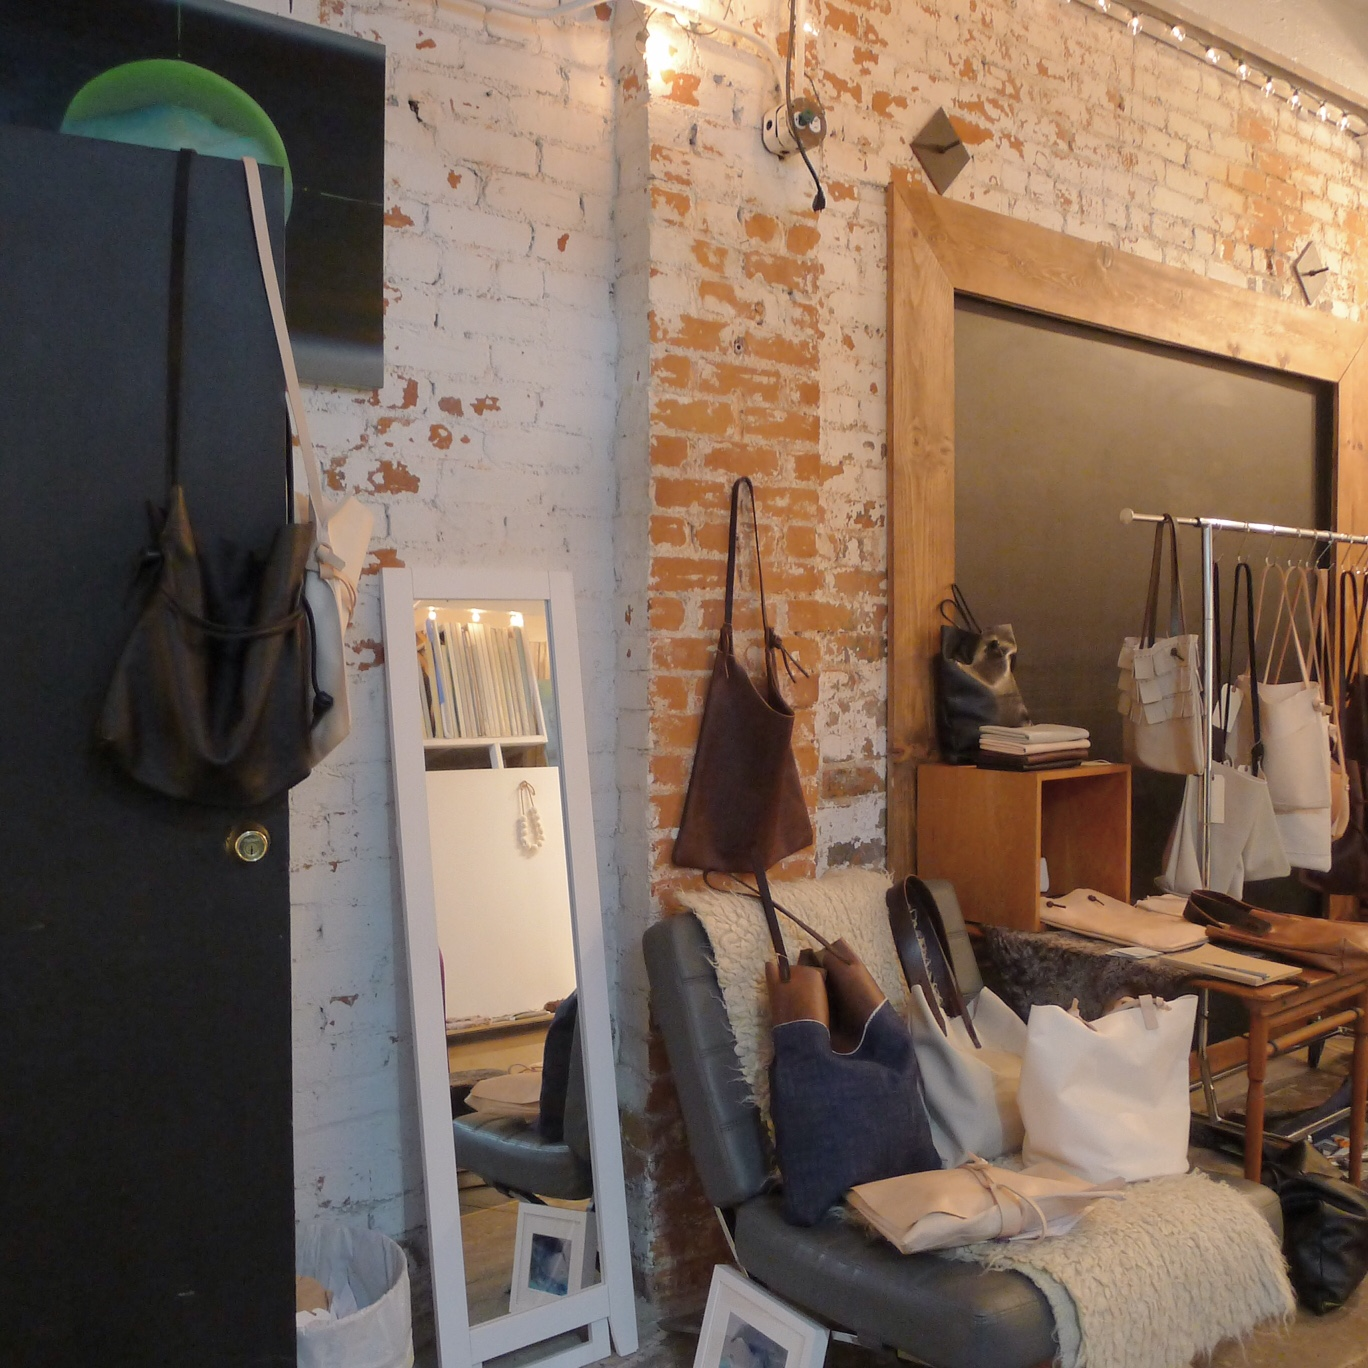 specialty dry goods installed at pop up.